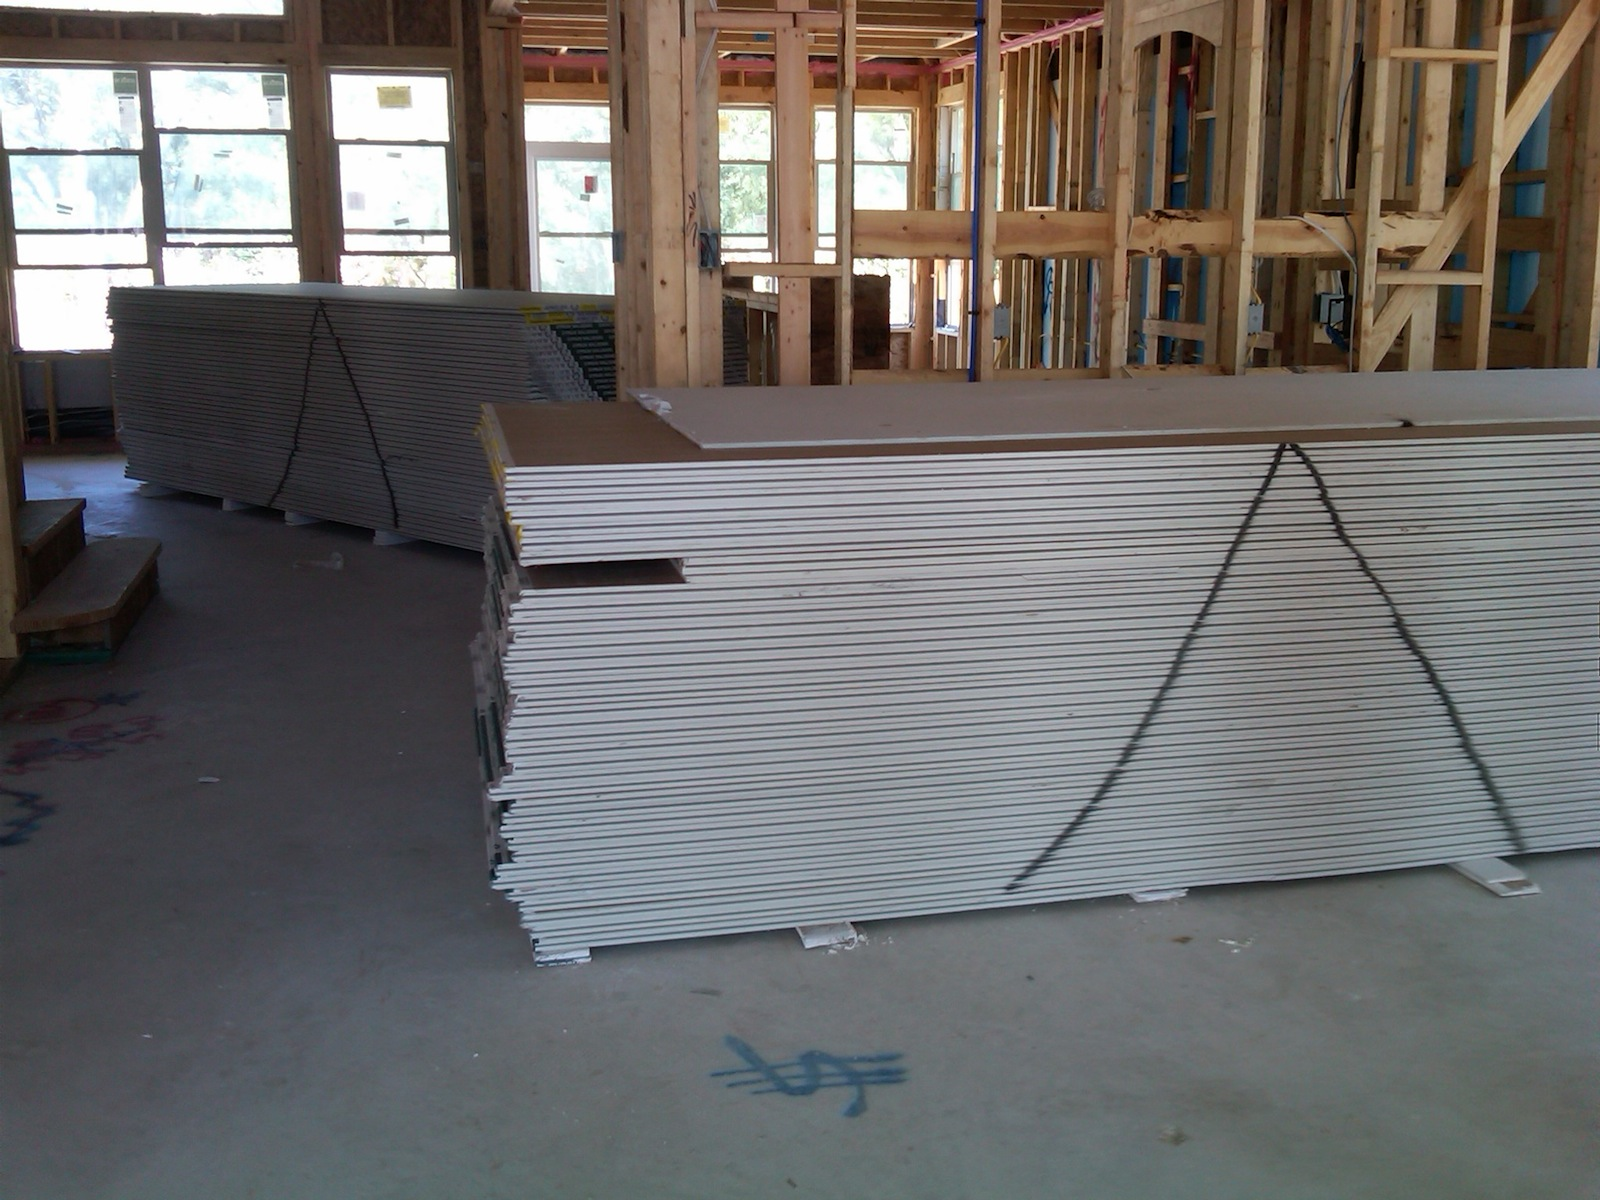 Sheetrock is in, ready for Insulation